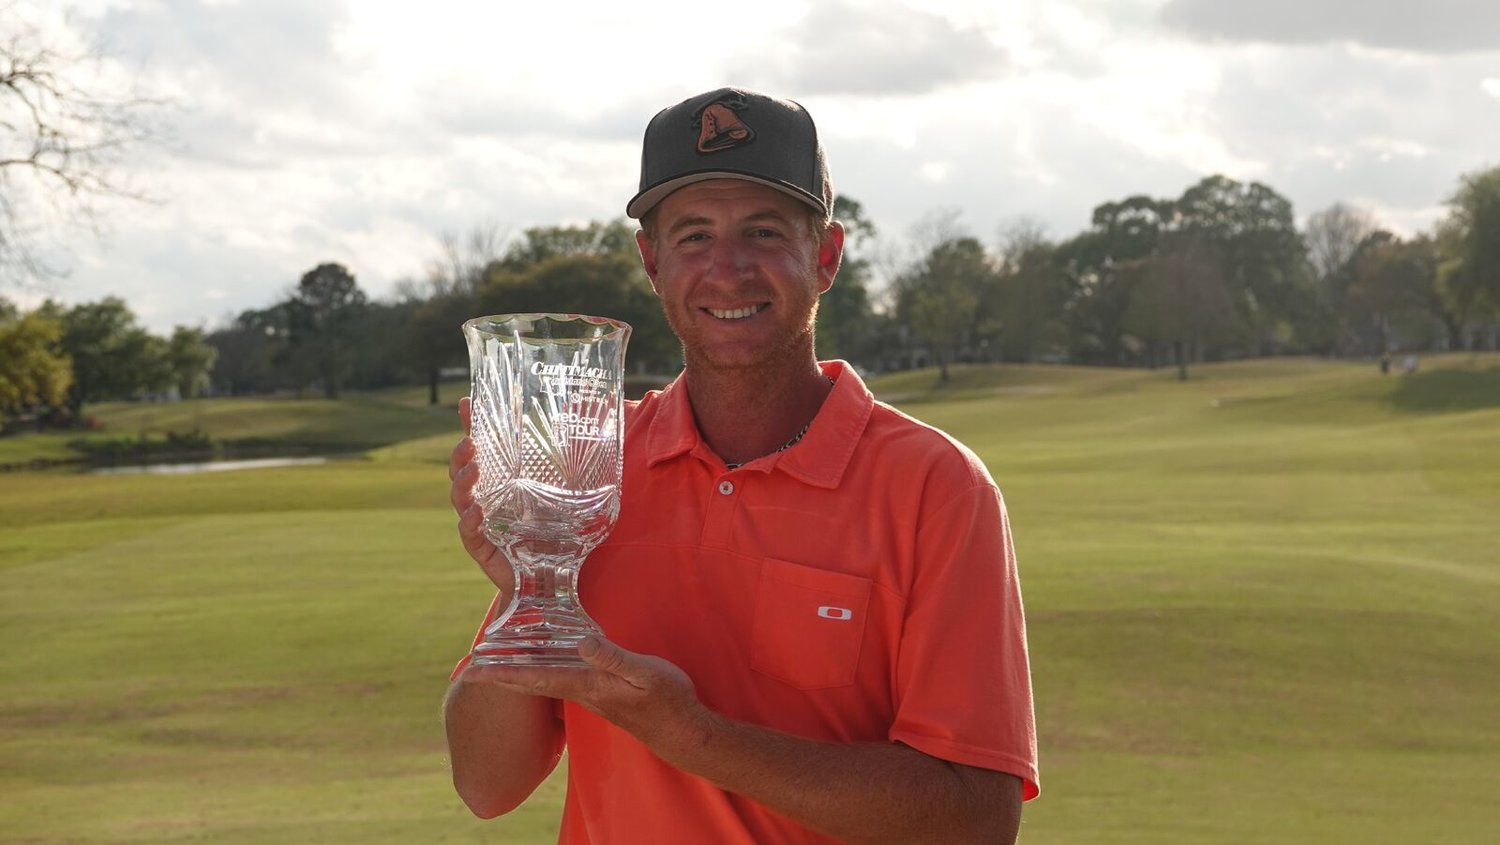 Nease graduate Vince Covello displays the trophy after winning the Chitimacha Louisiana Open on Sunday, his first Web.com Tour title.